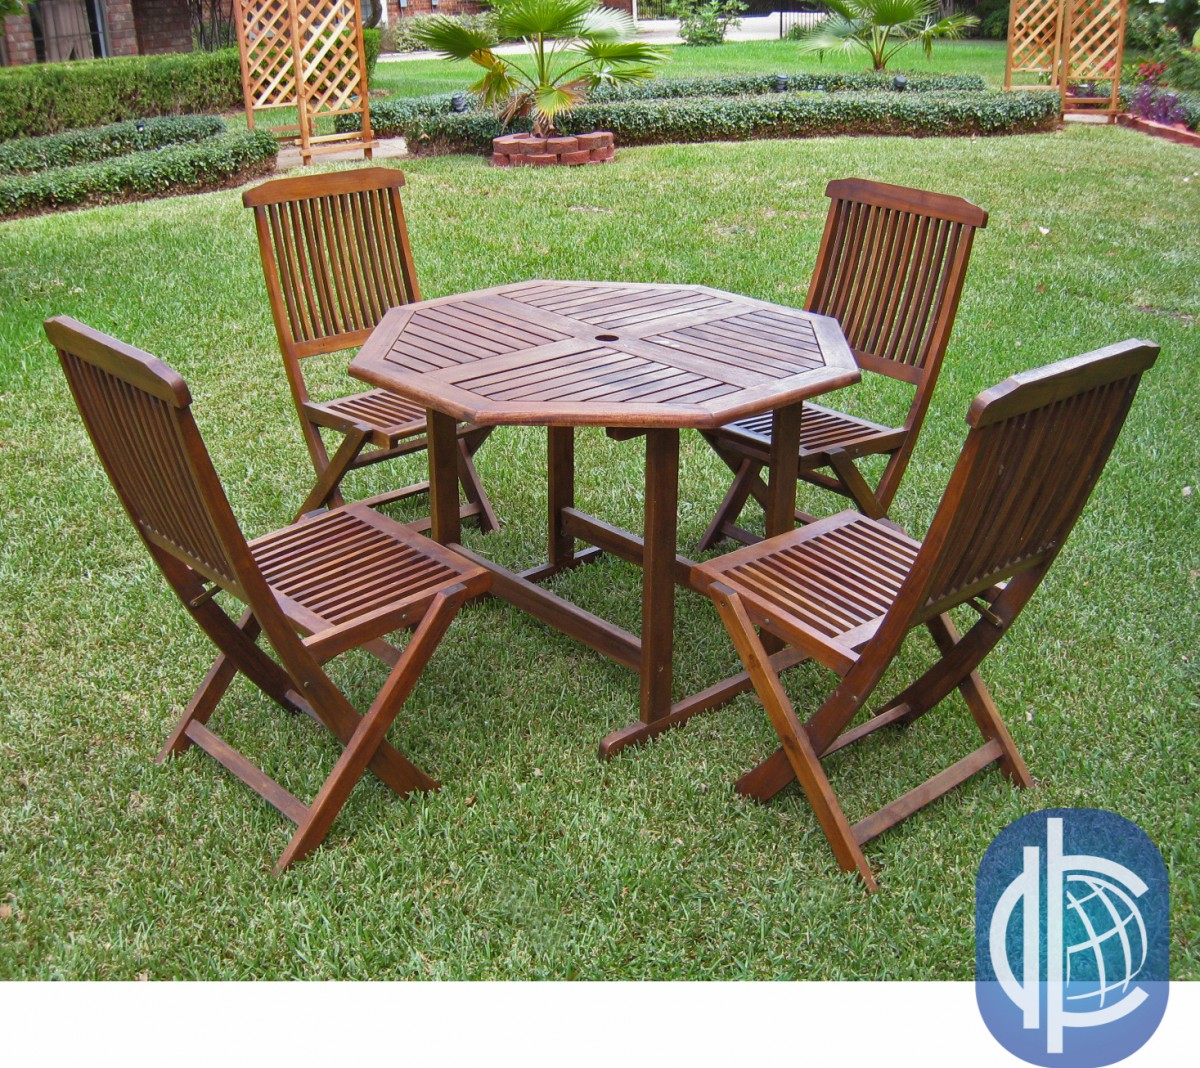 Acacia 5 piece stowaway patio furniture set patio table for Outdoor furniture 5 piece